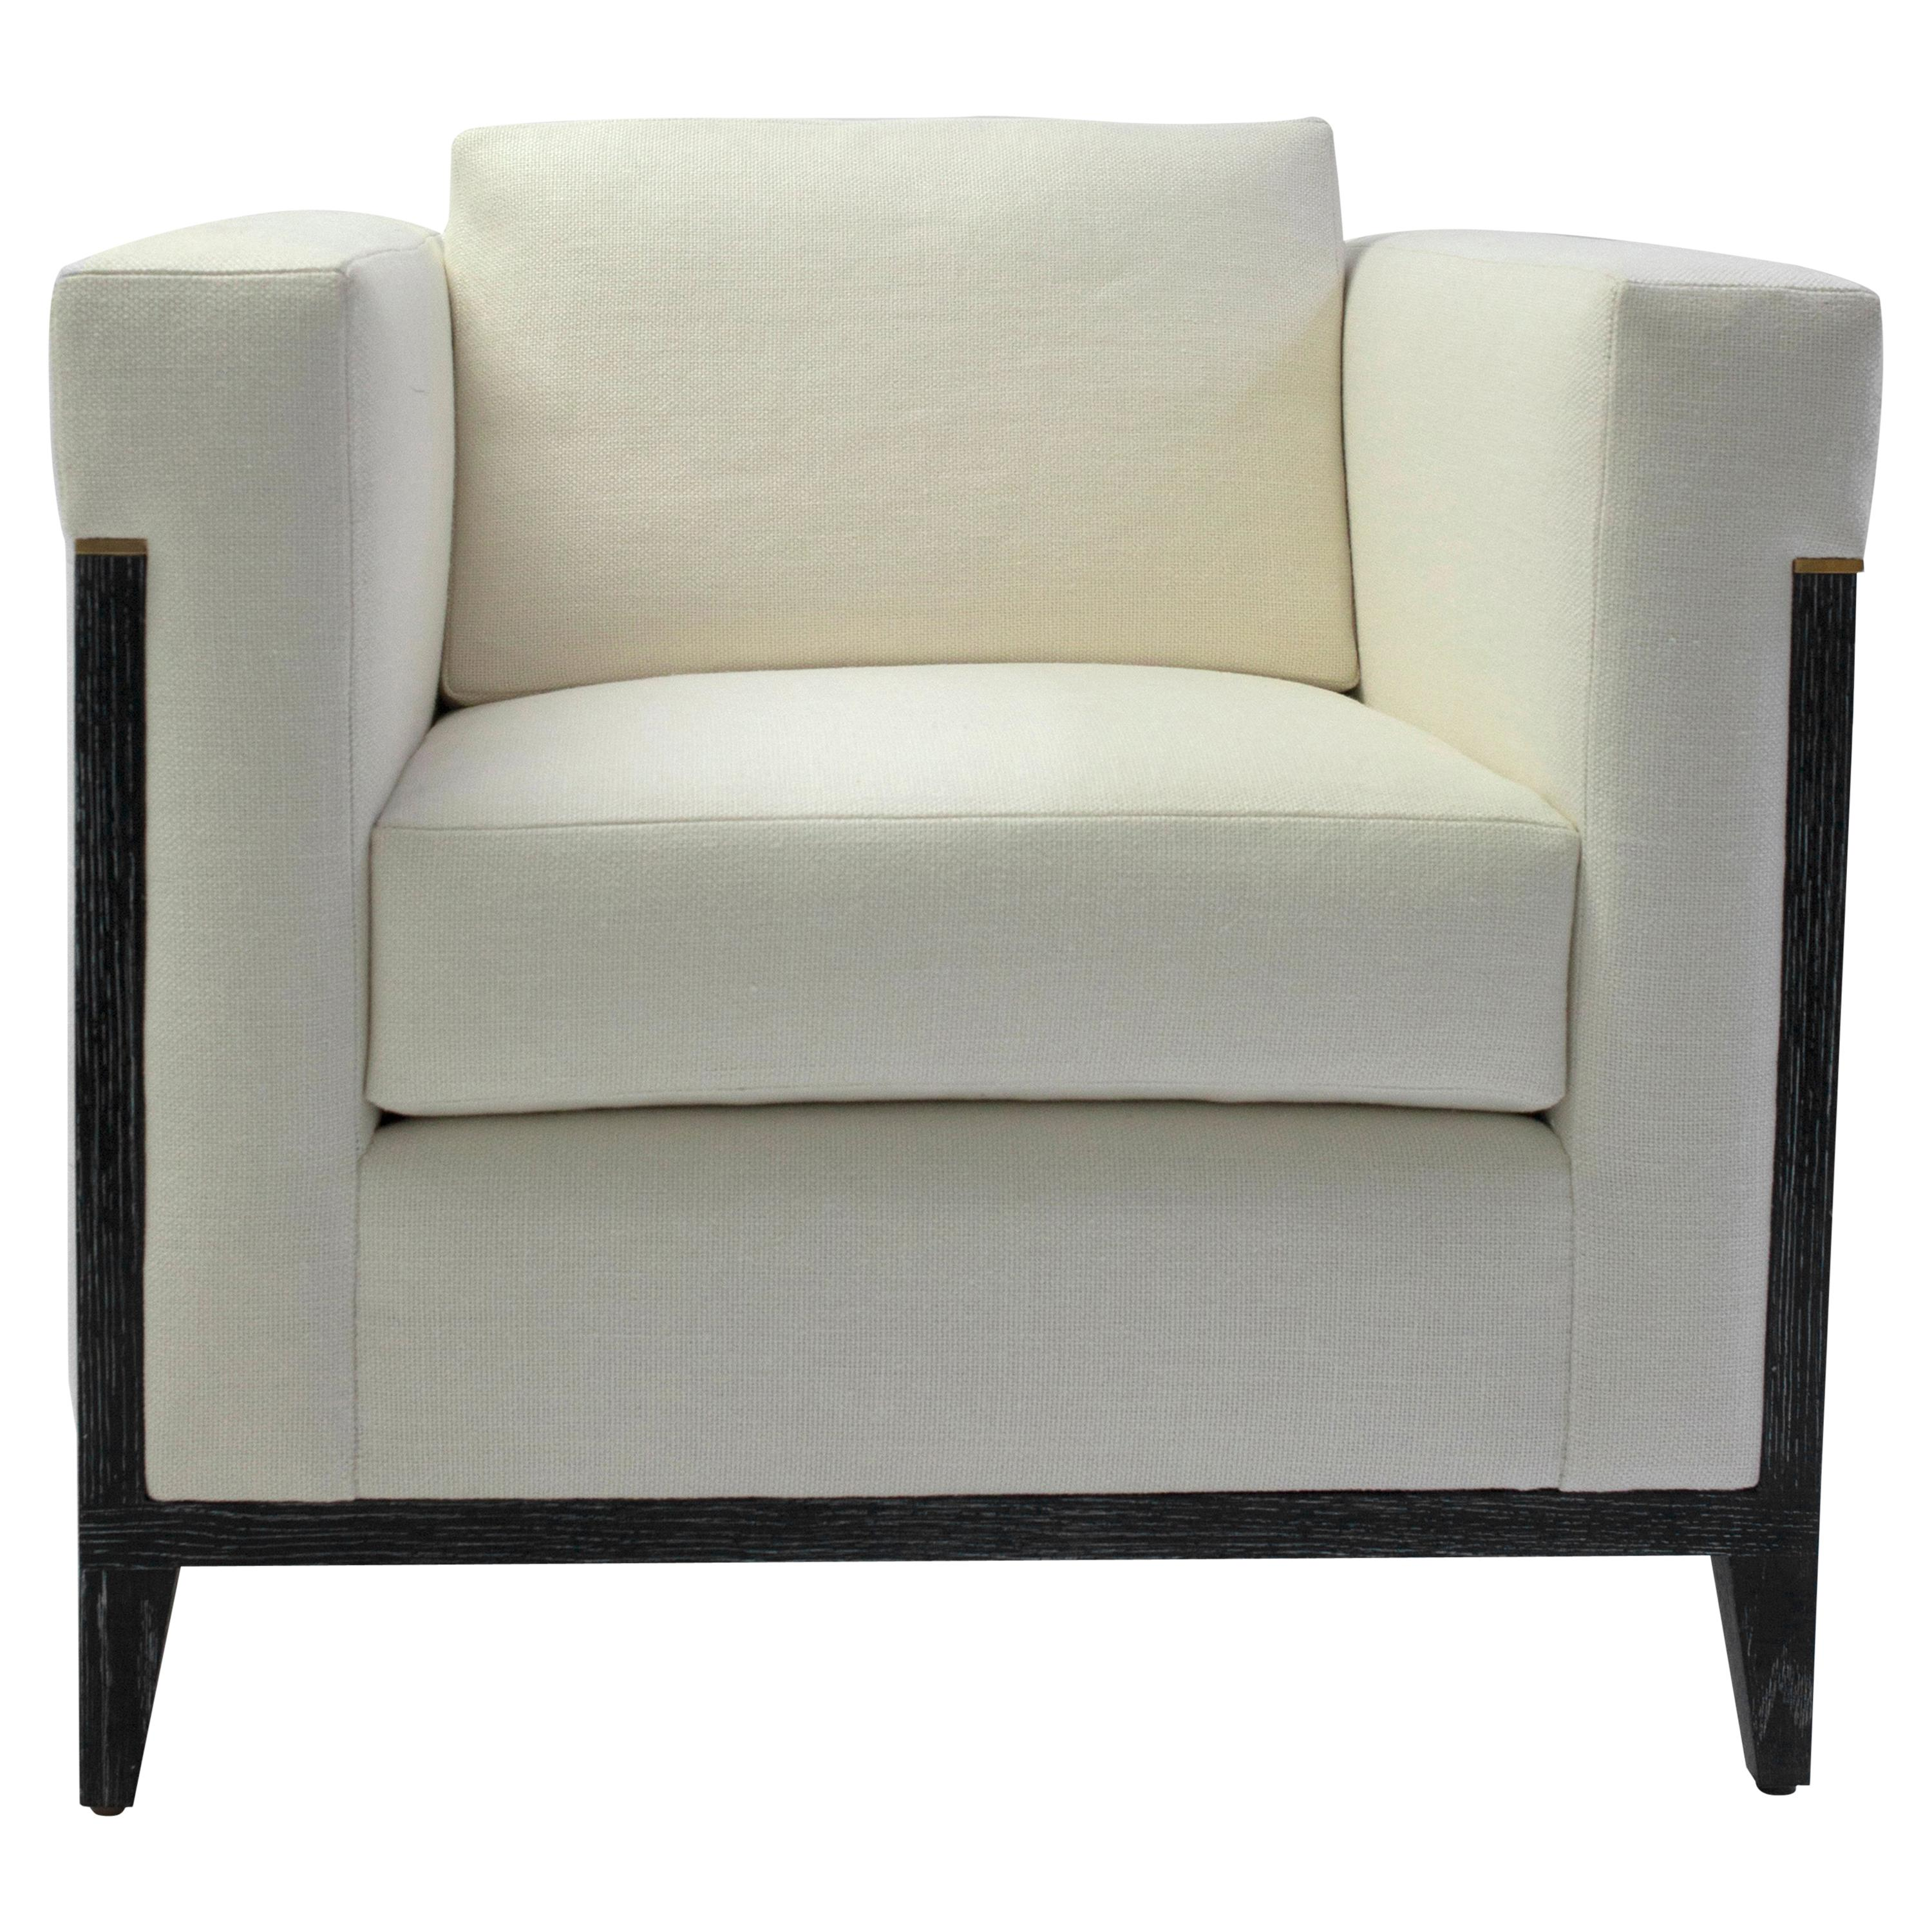 Bisquit Tufted Square Arm Club Chair with Wood Frame and Button Detailing